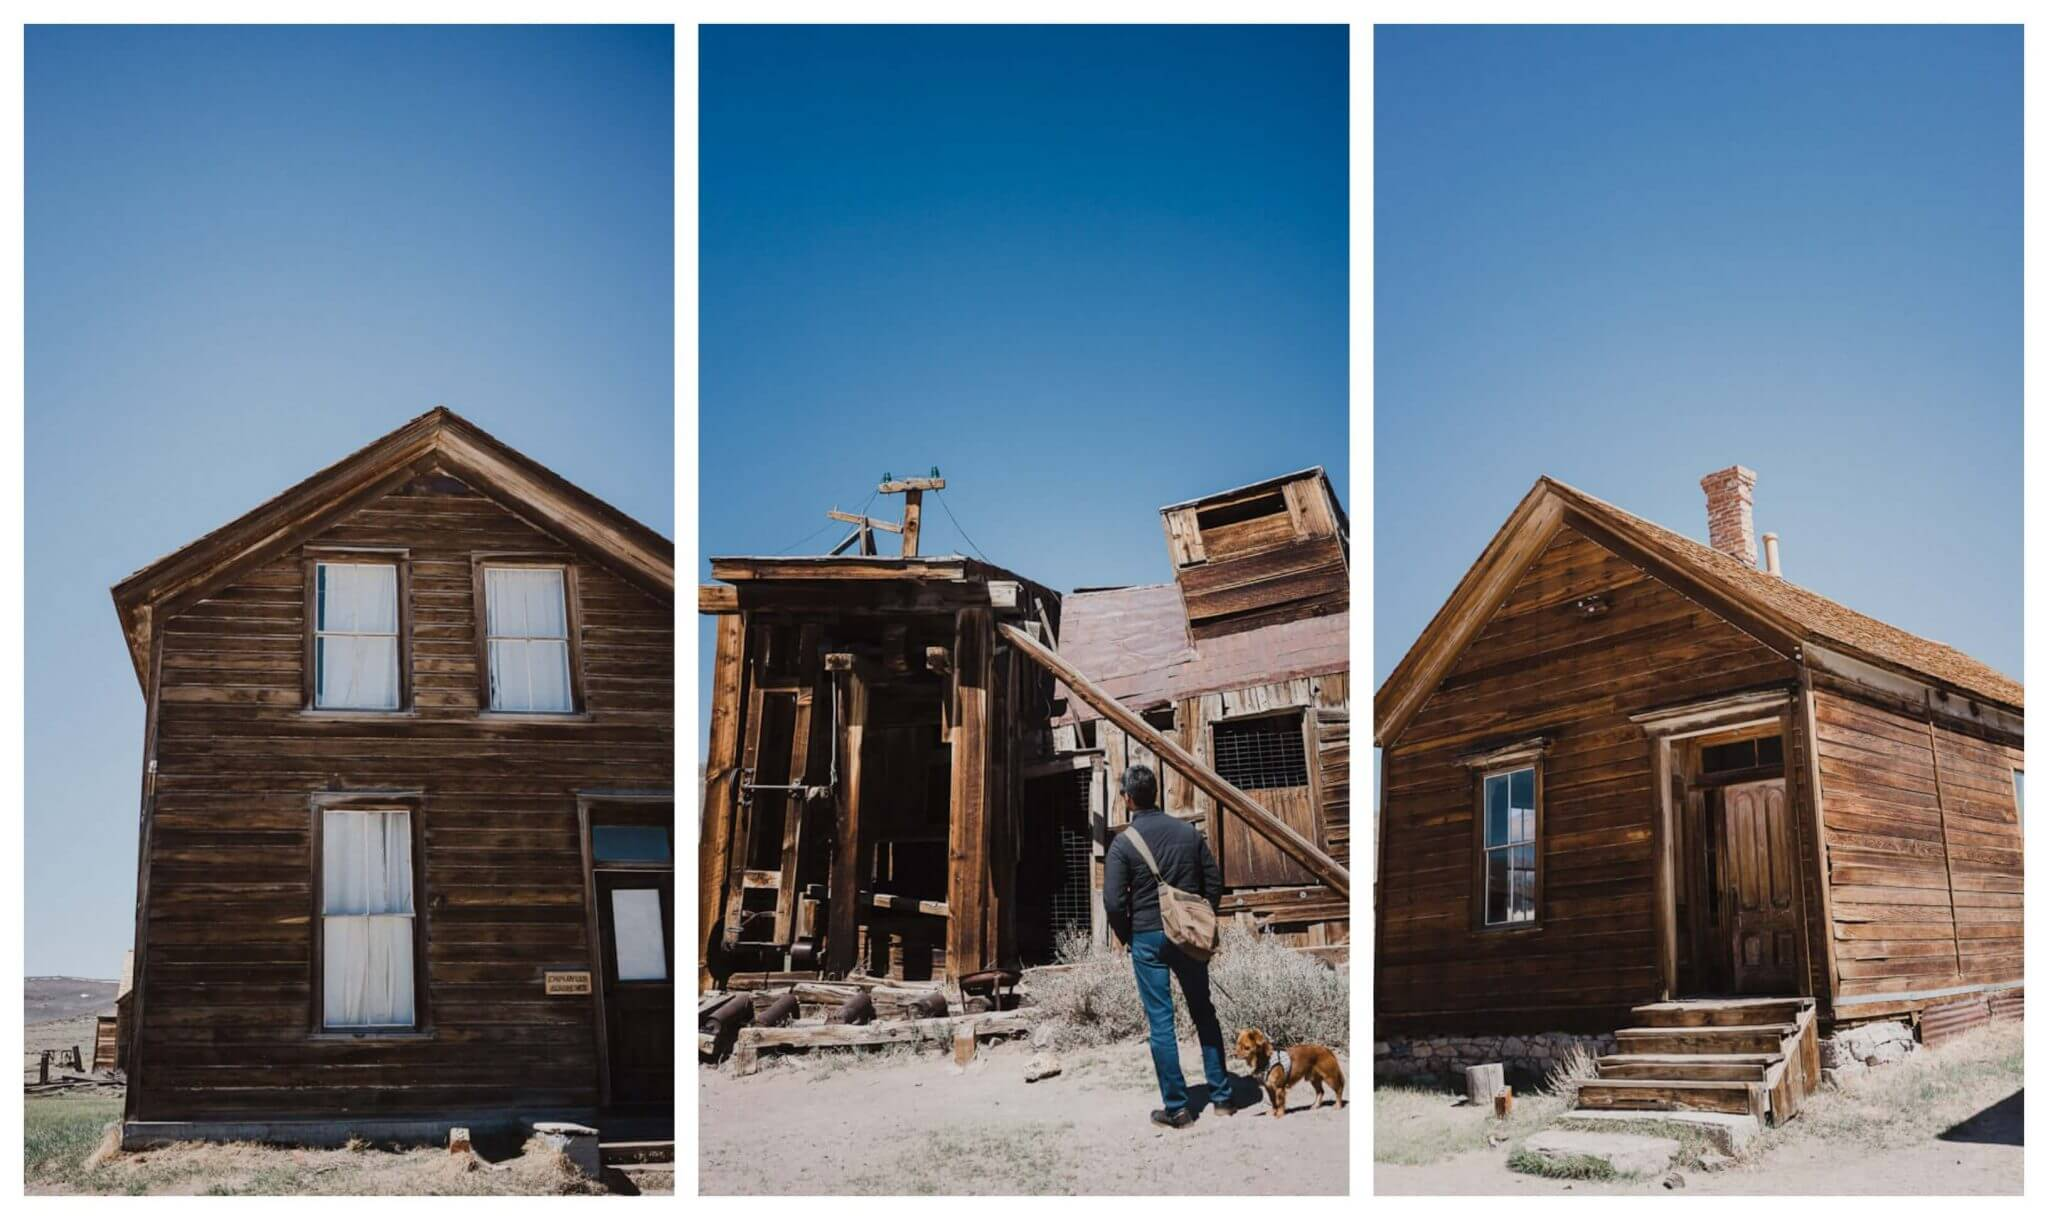 Self guided tour of Bodie ghost town in Mono County